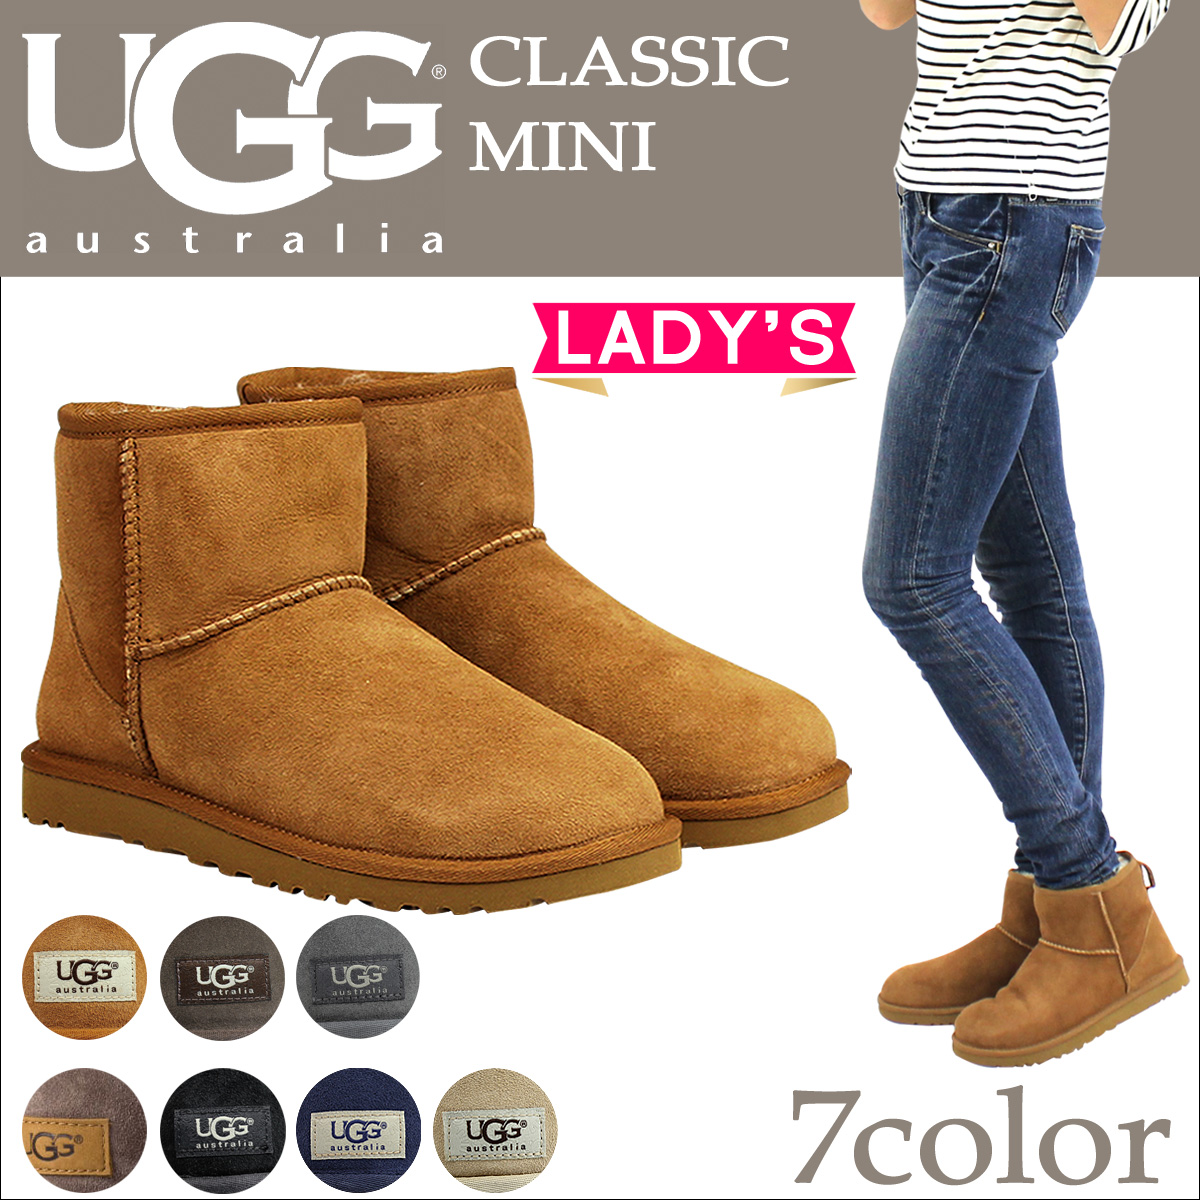 UGG Ugg Classic mini Sheepskin boots WOMENS CLASSIC MINI 5854 Sheepskin ladies